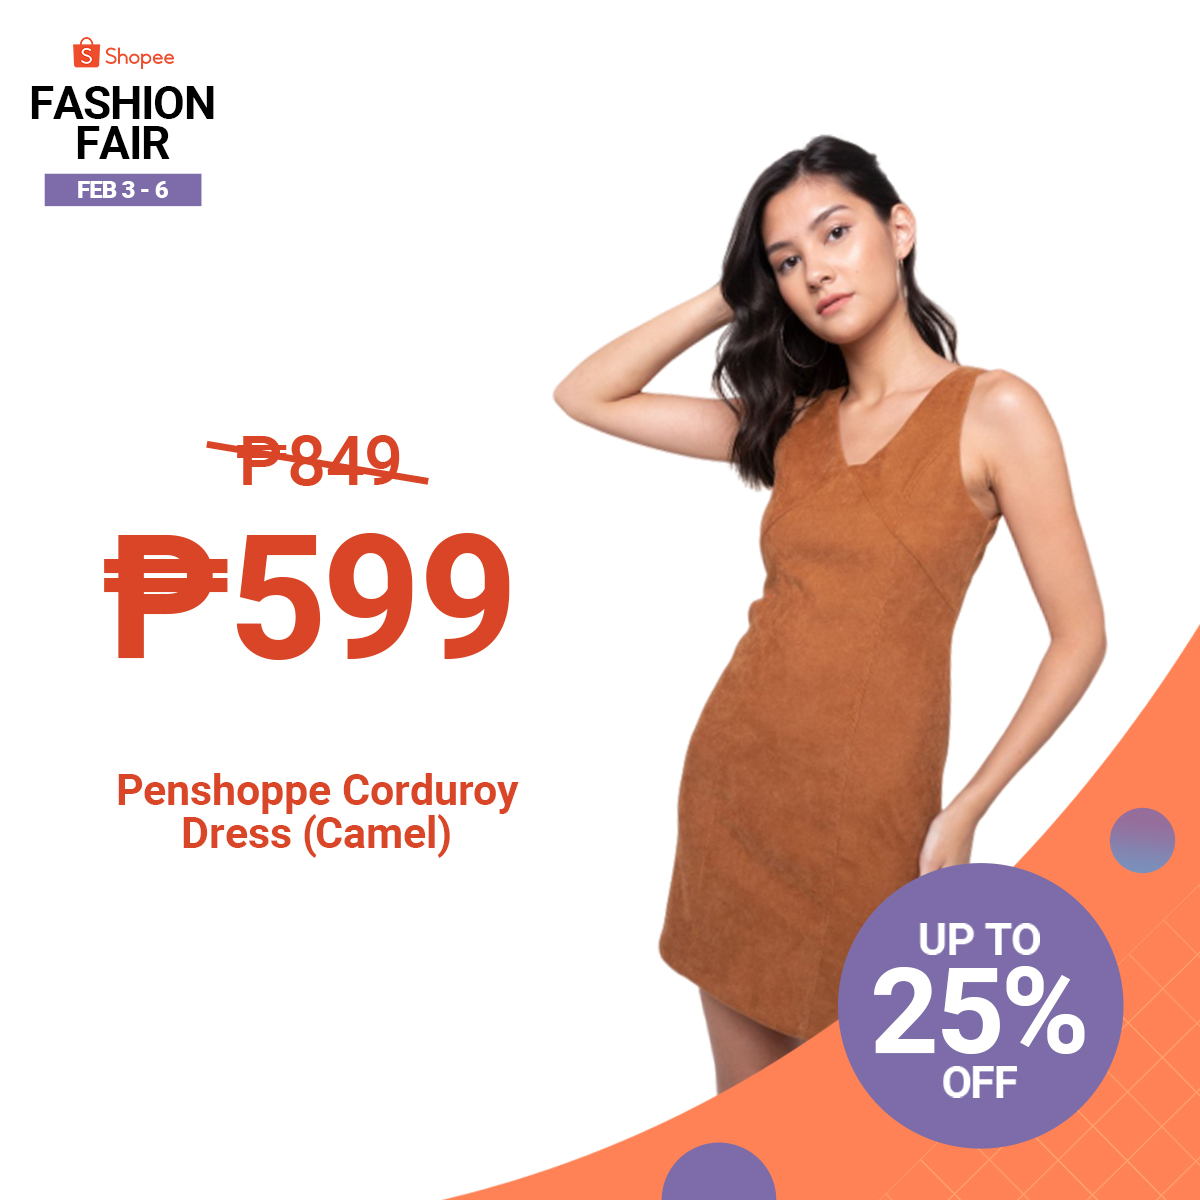 Unleash your inner fashionista during Shopee's Fashion Fair